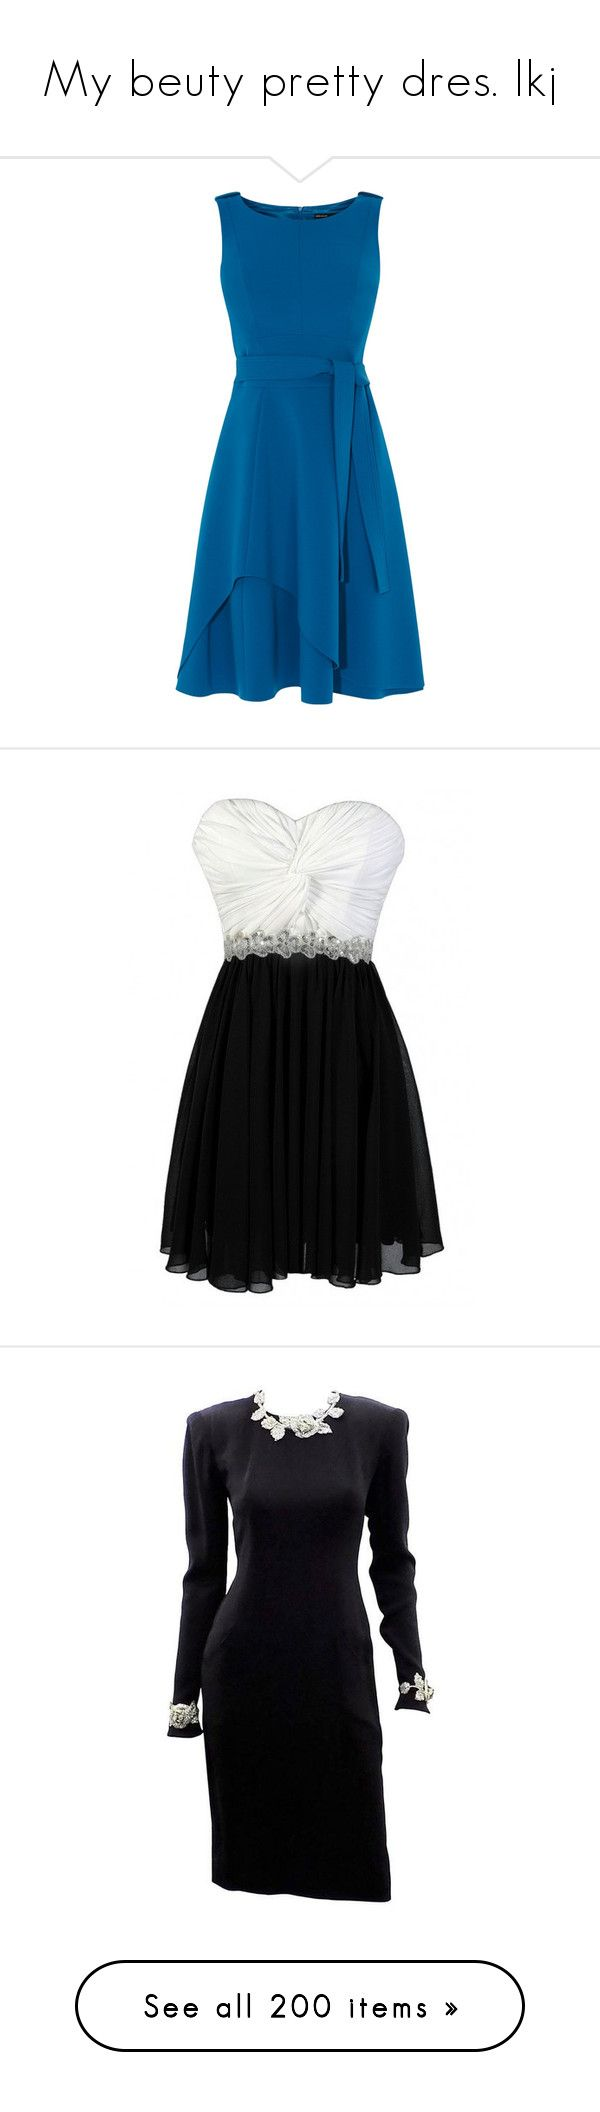 """""""My beuty pretty dres. lkj"""" by hella-von-felis ❤ liked on Polyvore featuring dresses, mini dress, full midi skirts, maxi dresses, fitted maxi dresses, blue maxi dress, black and white cocktail dress, chiffon cocktail dresses, embellished cocktail dress and strapless dresses"""